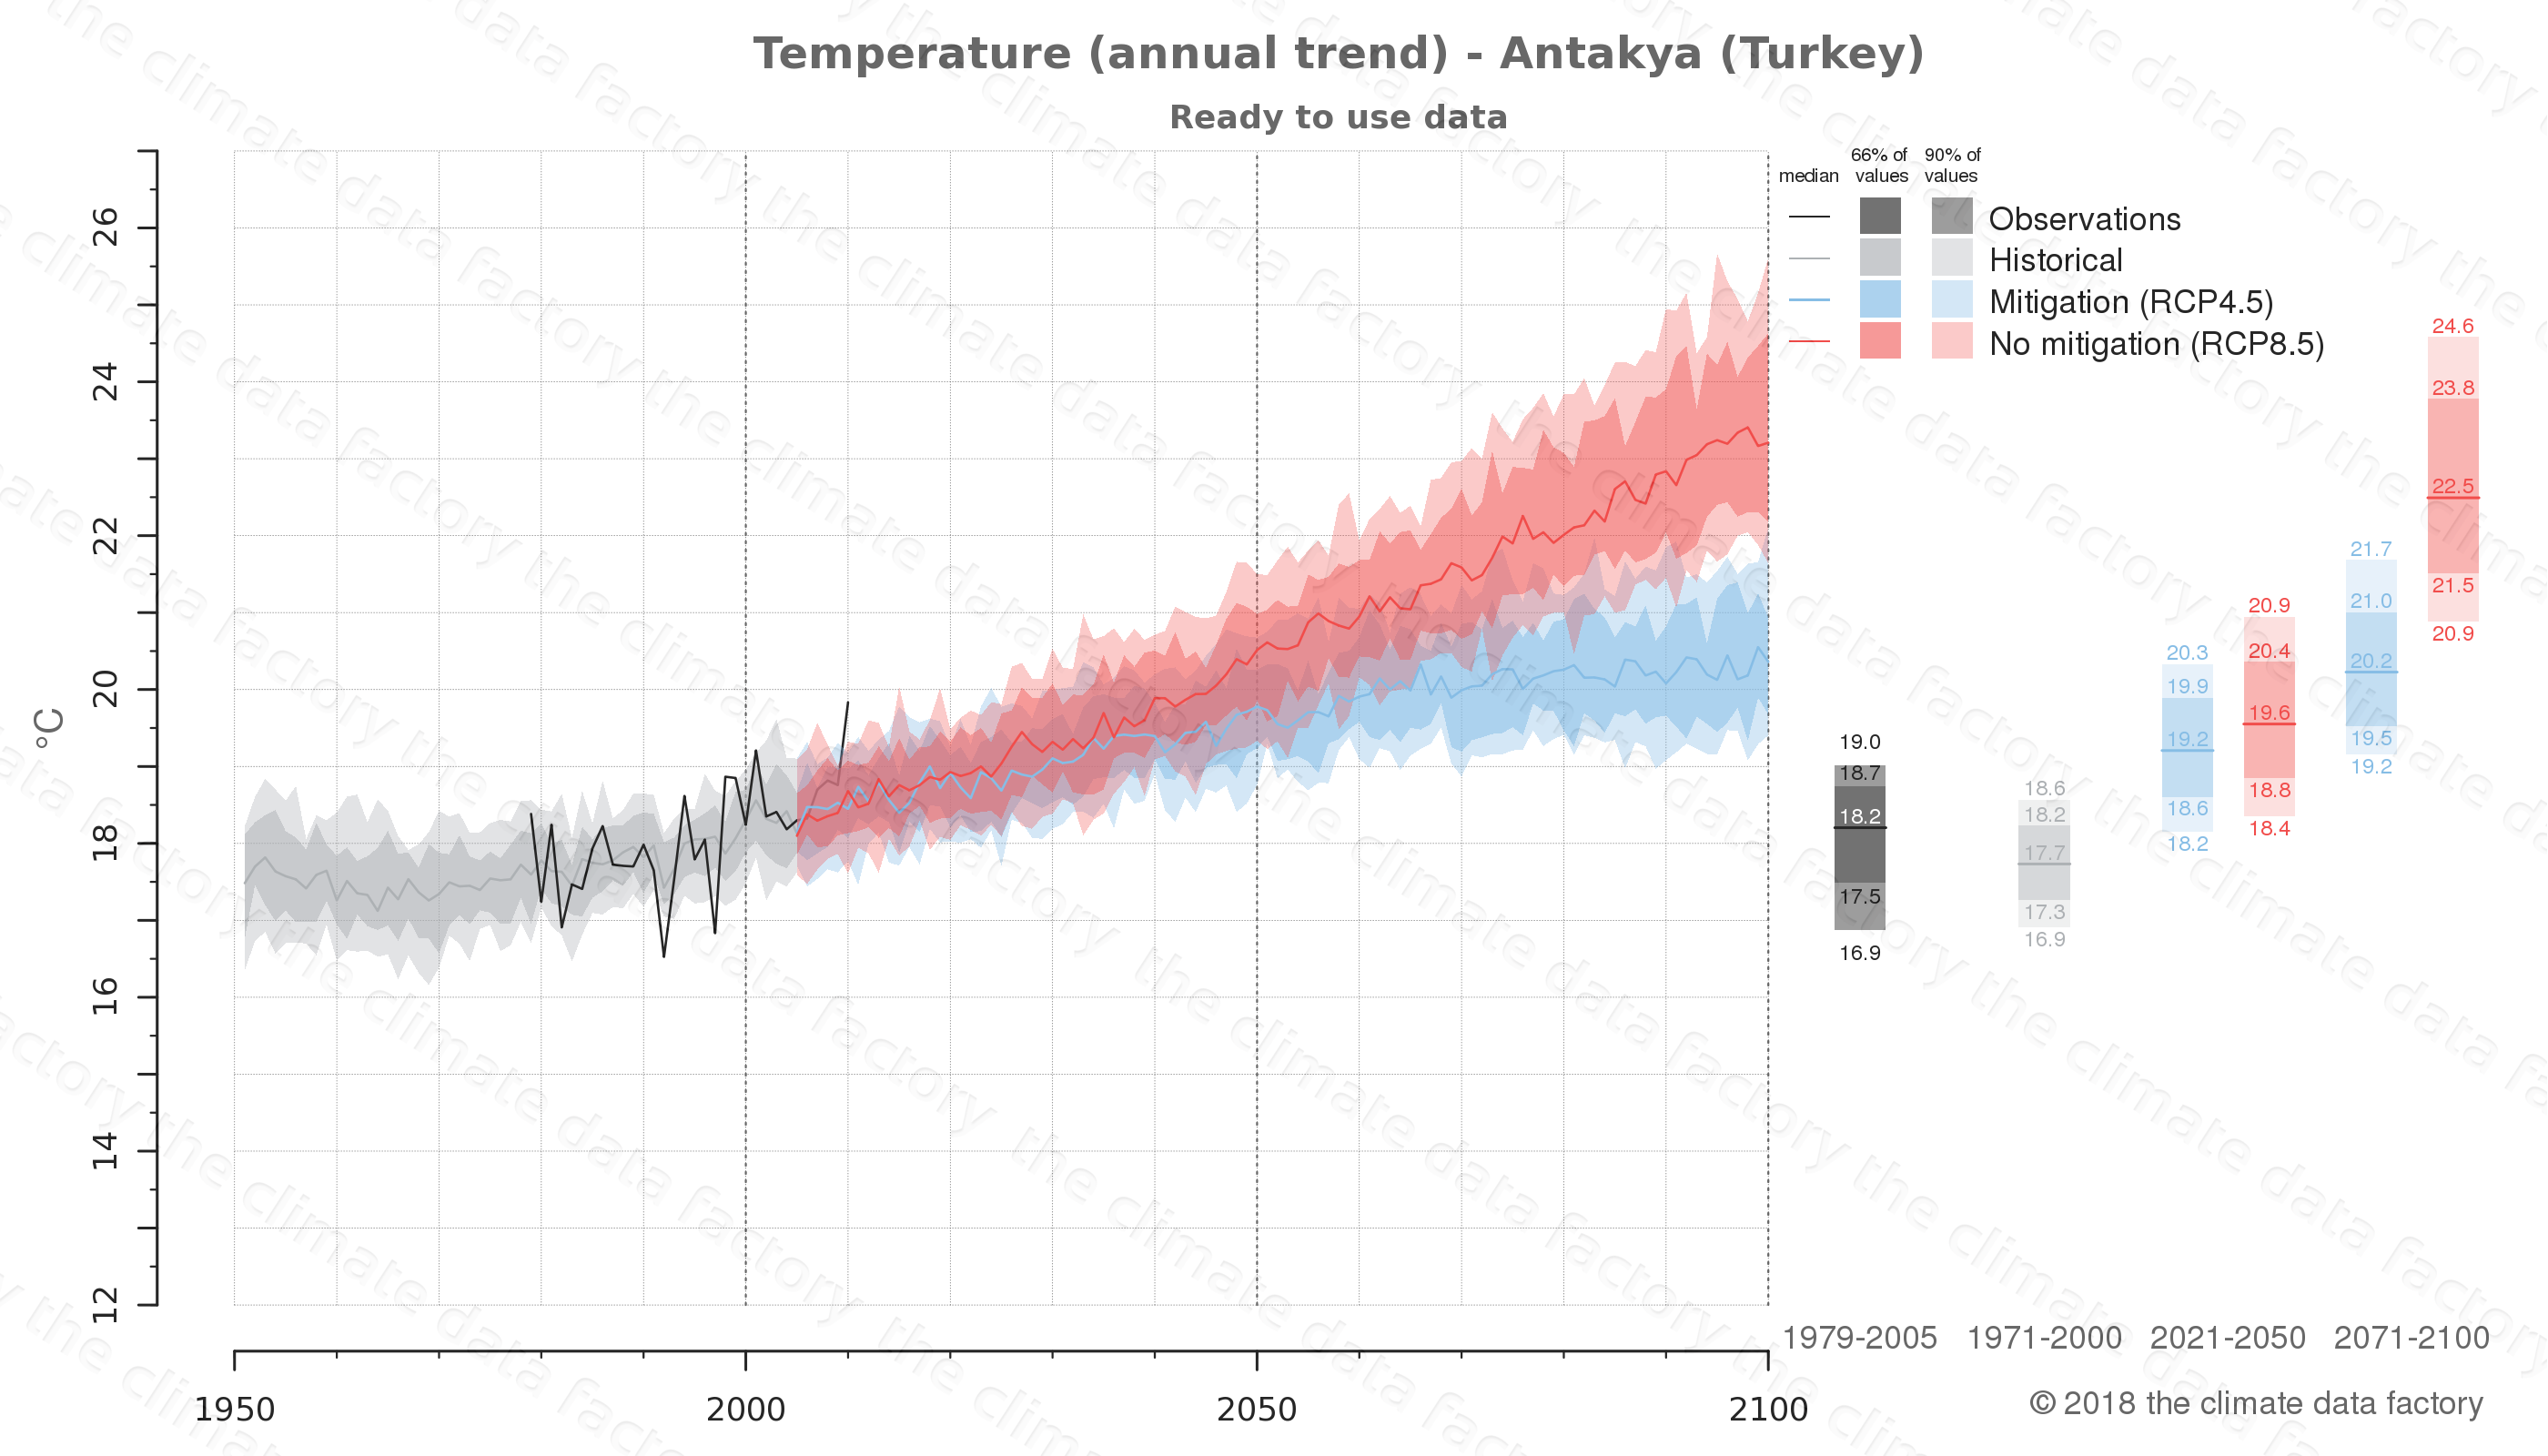 climate change data policy adaptation climate graph city data temperature antakya turkey